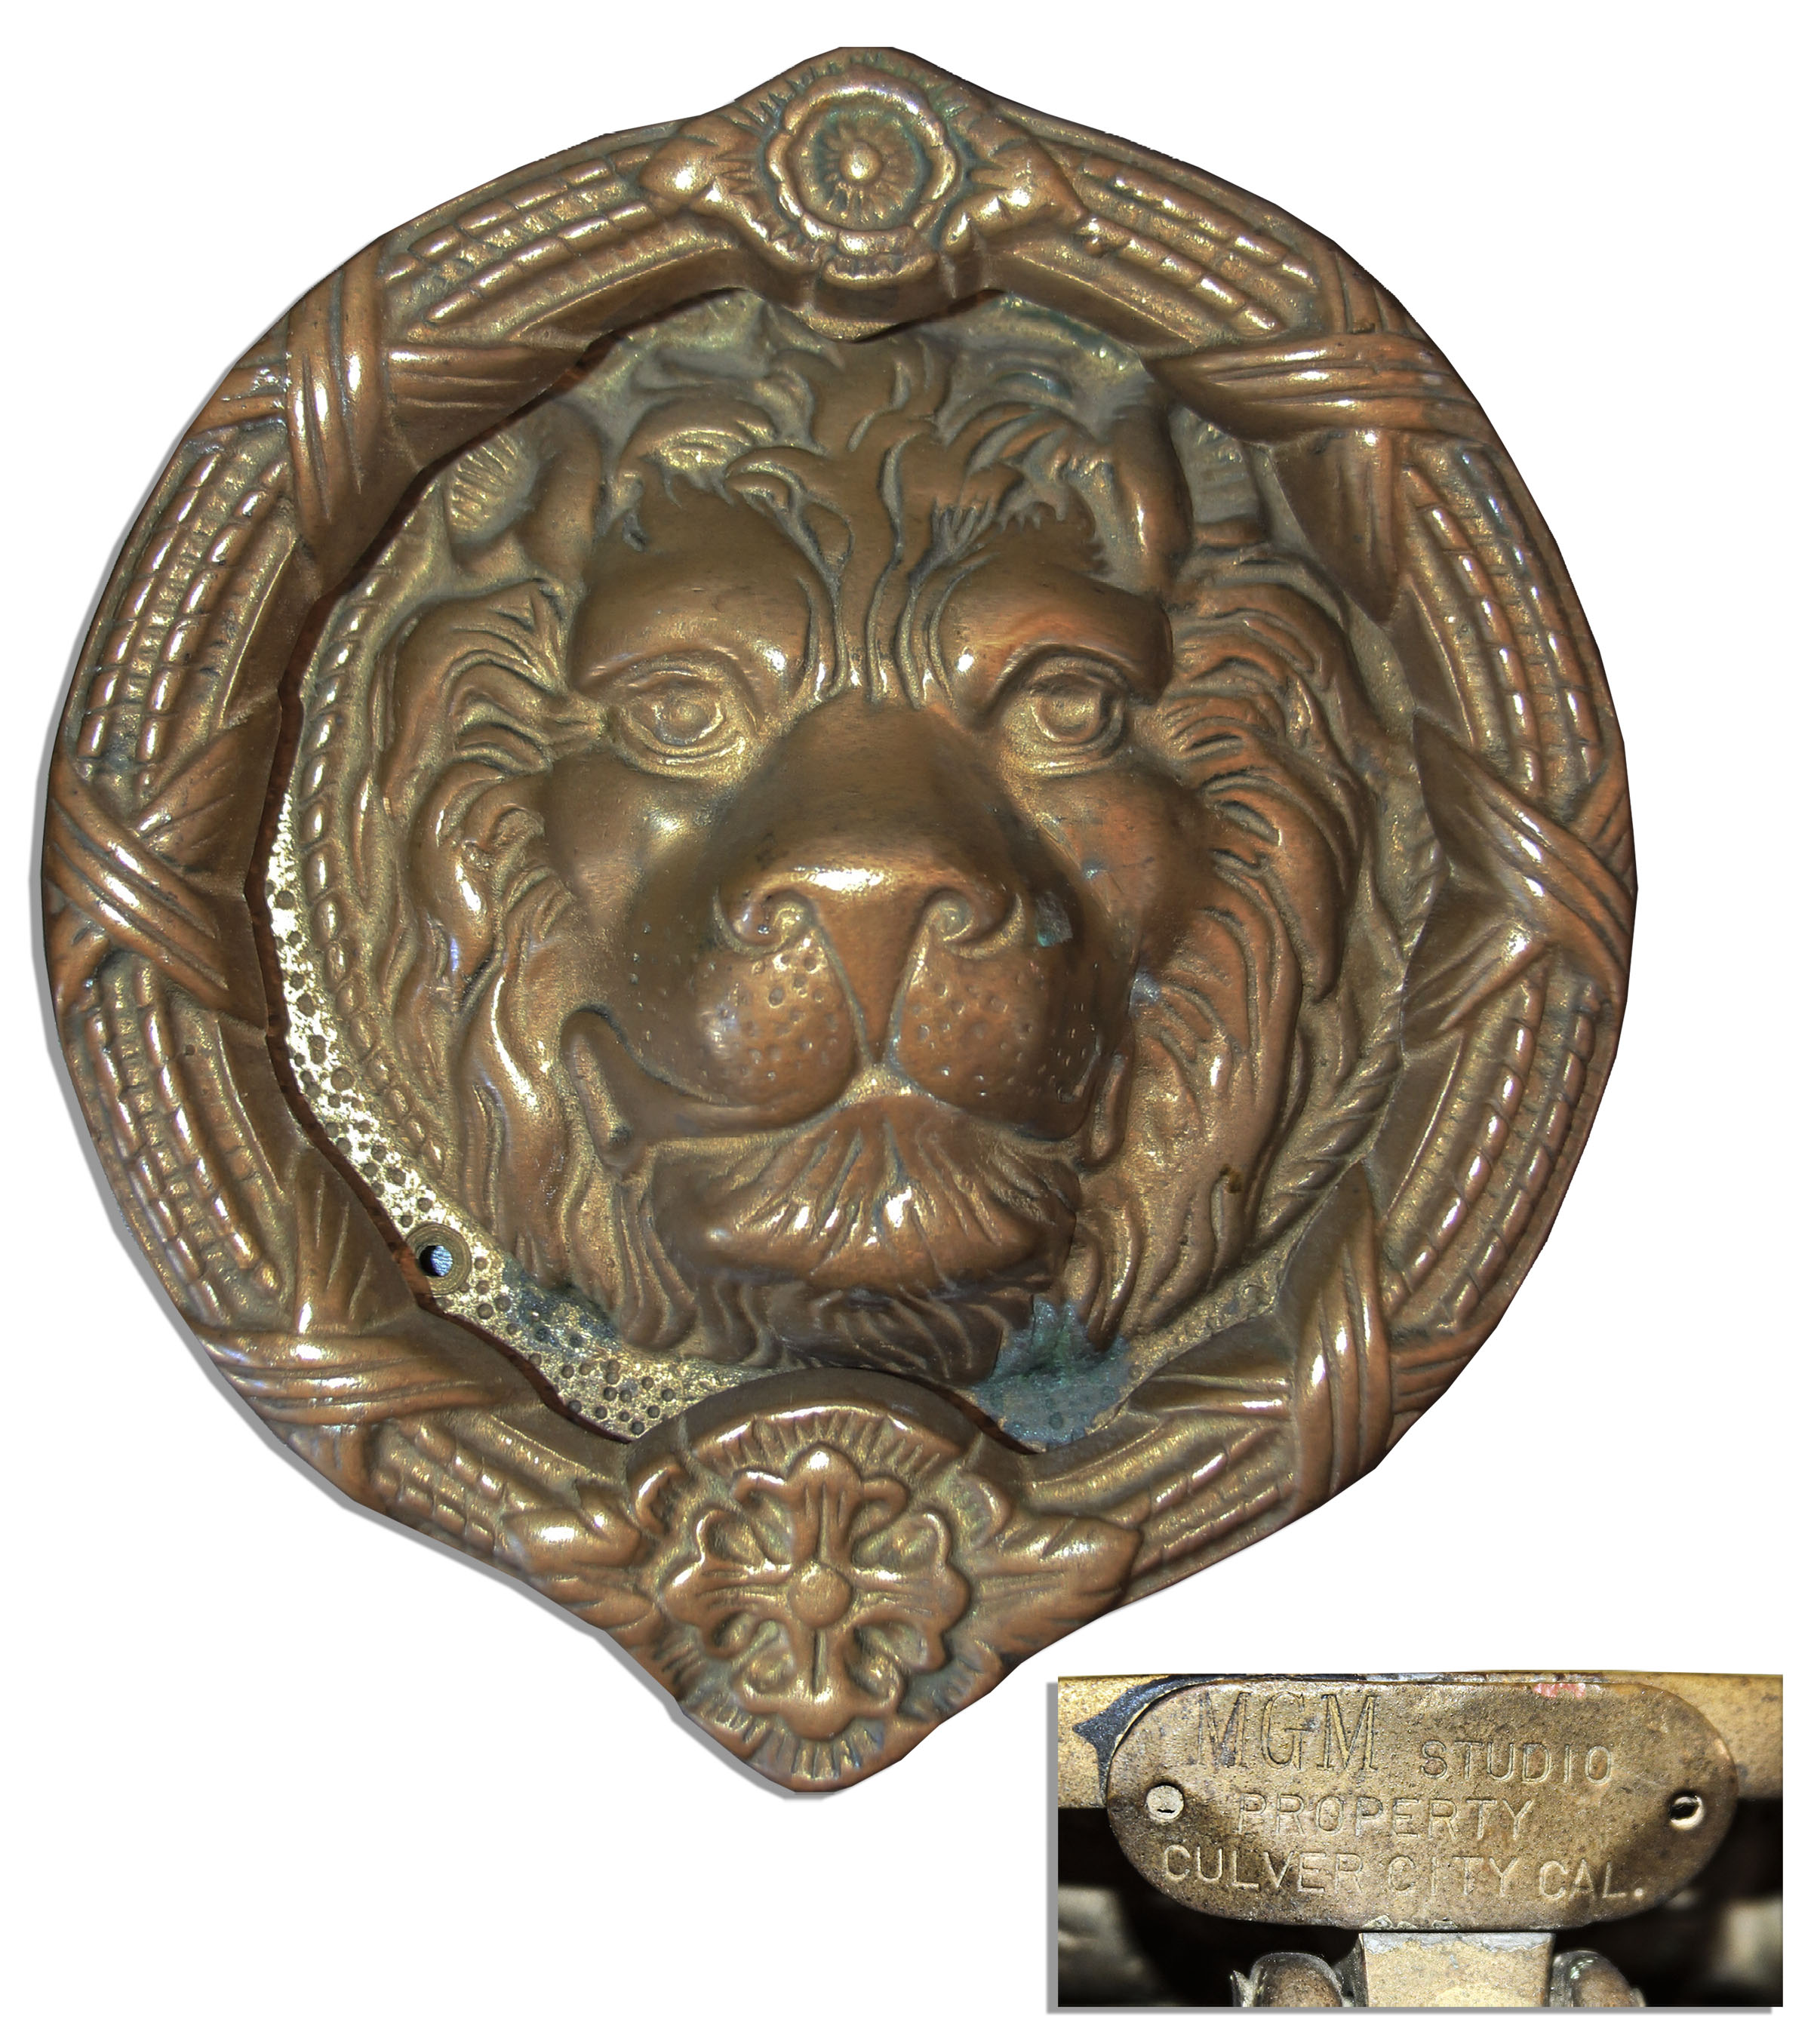 Exceptionnel MGM Door Knocker    The Iconic MGM Lion ...